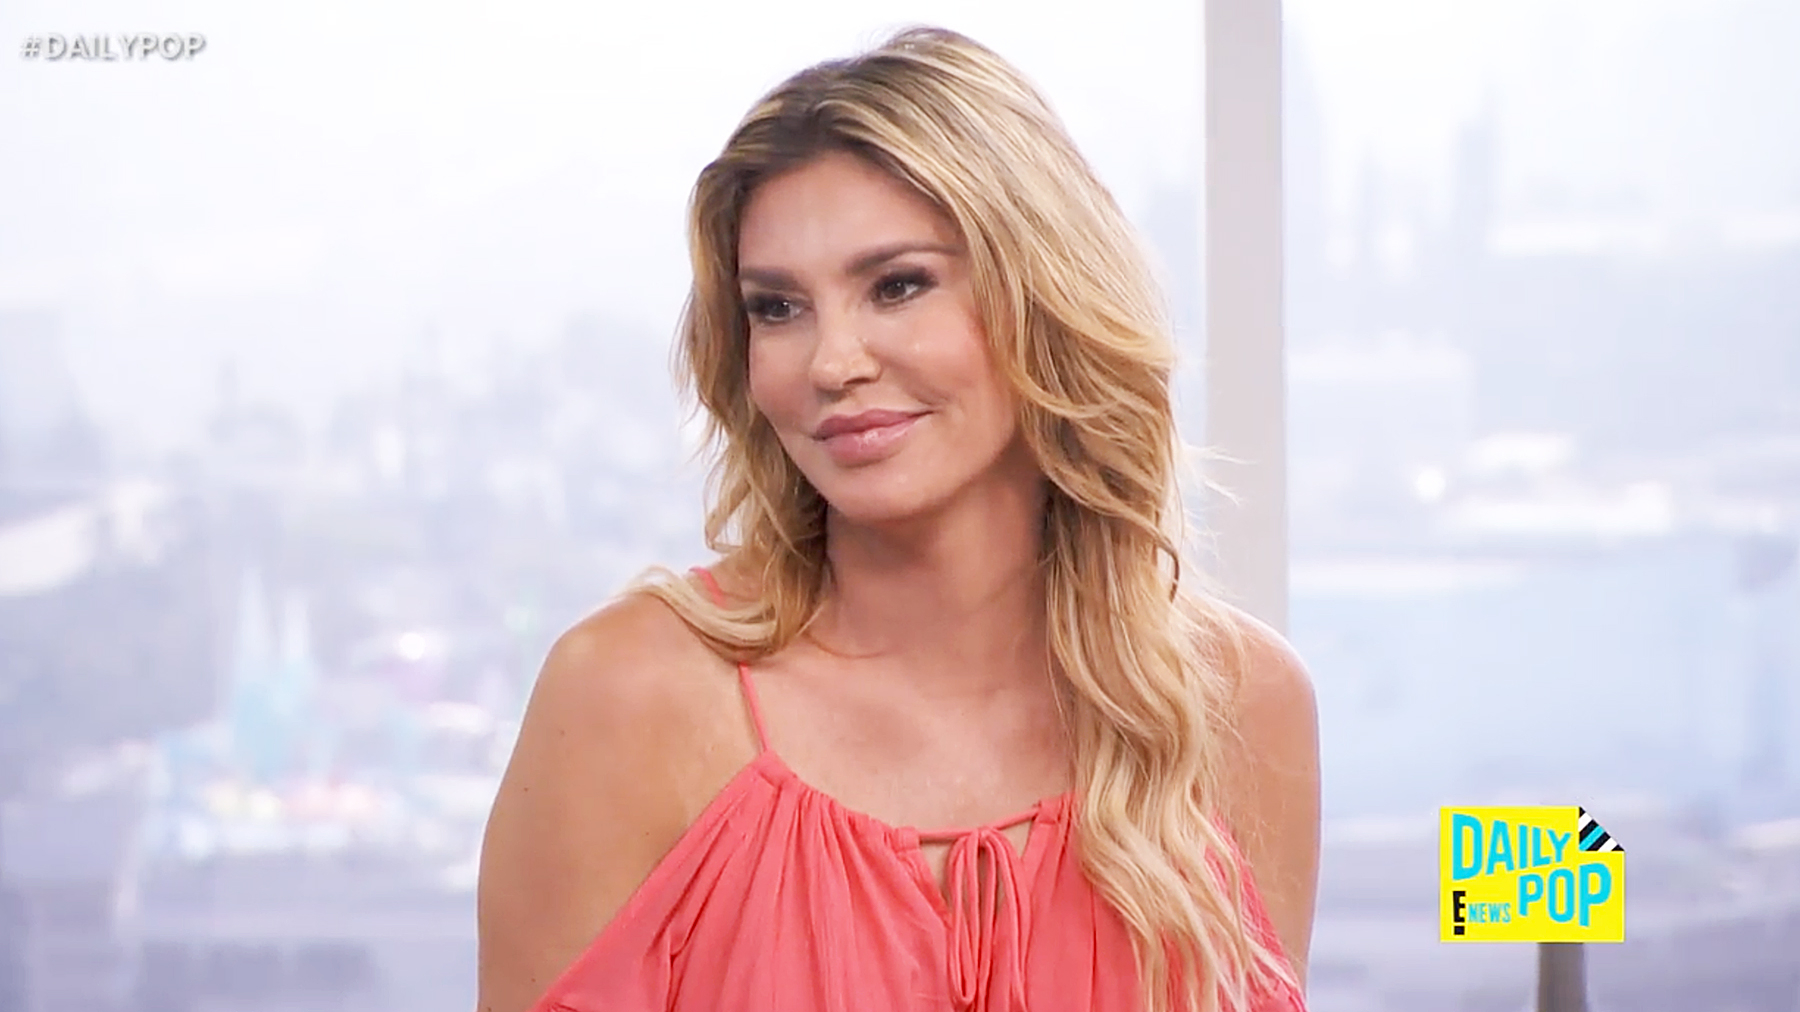 Brandi glanville drinking and dating sales